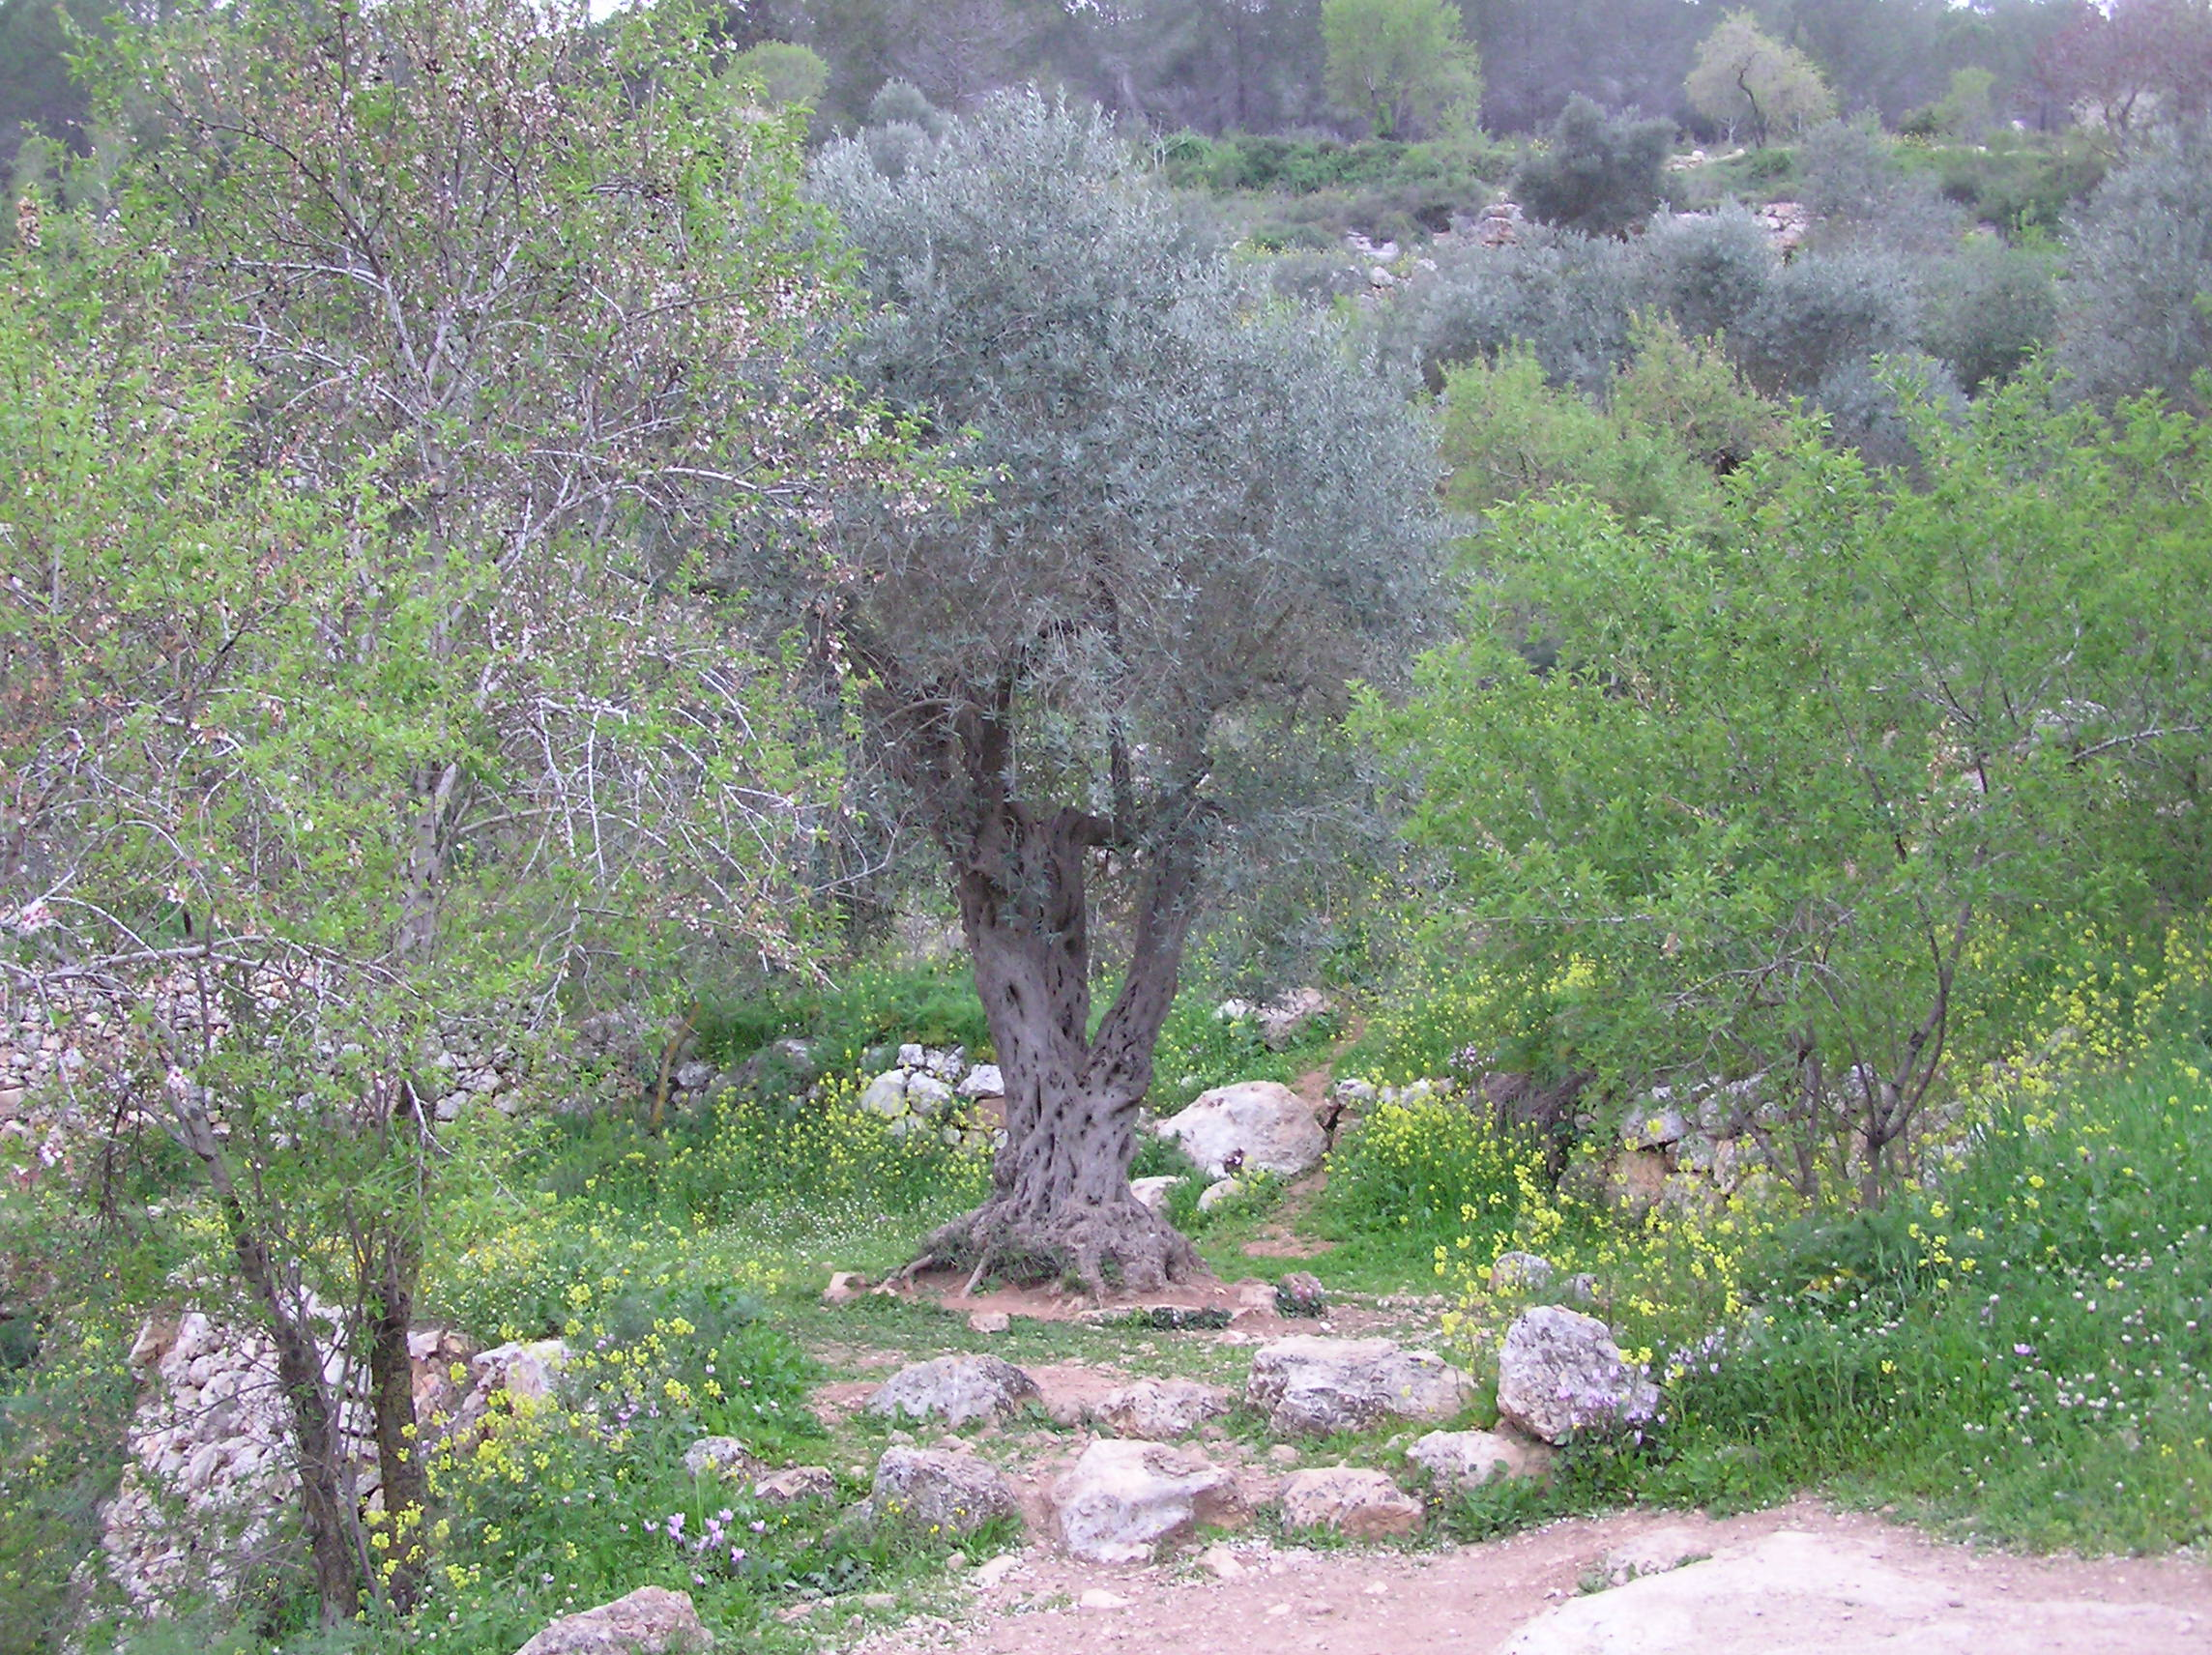 Sataf - صطاف : Sataf's Olive Tree Stands In Silence In Terraces Nearby The Ain.